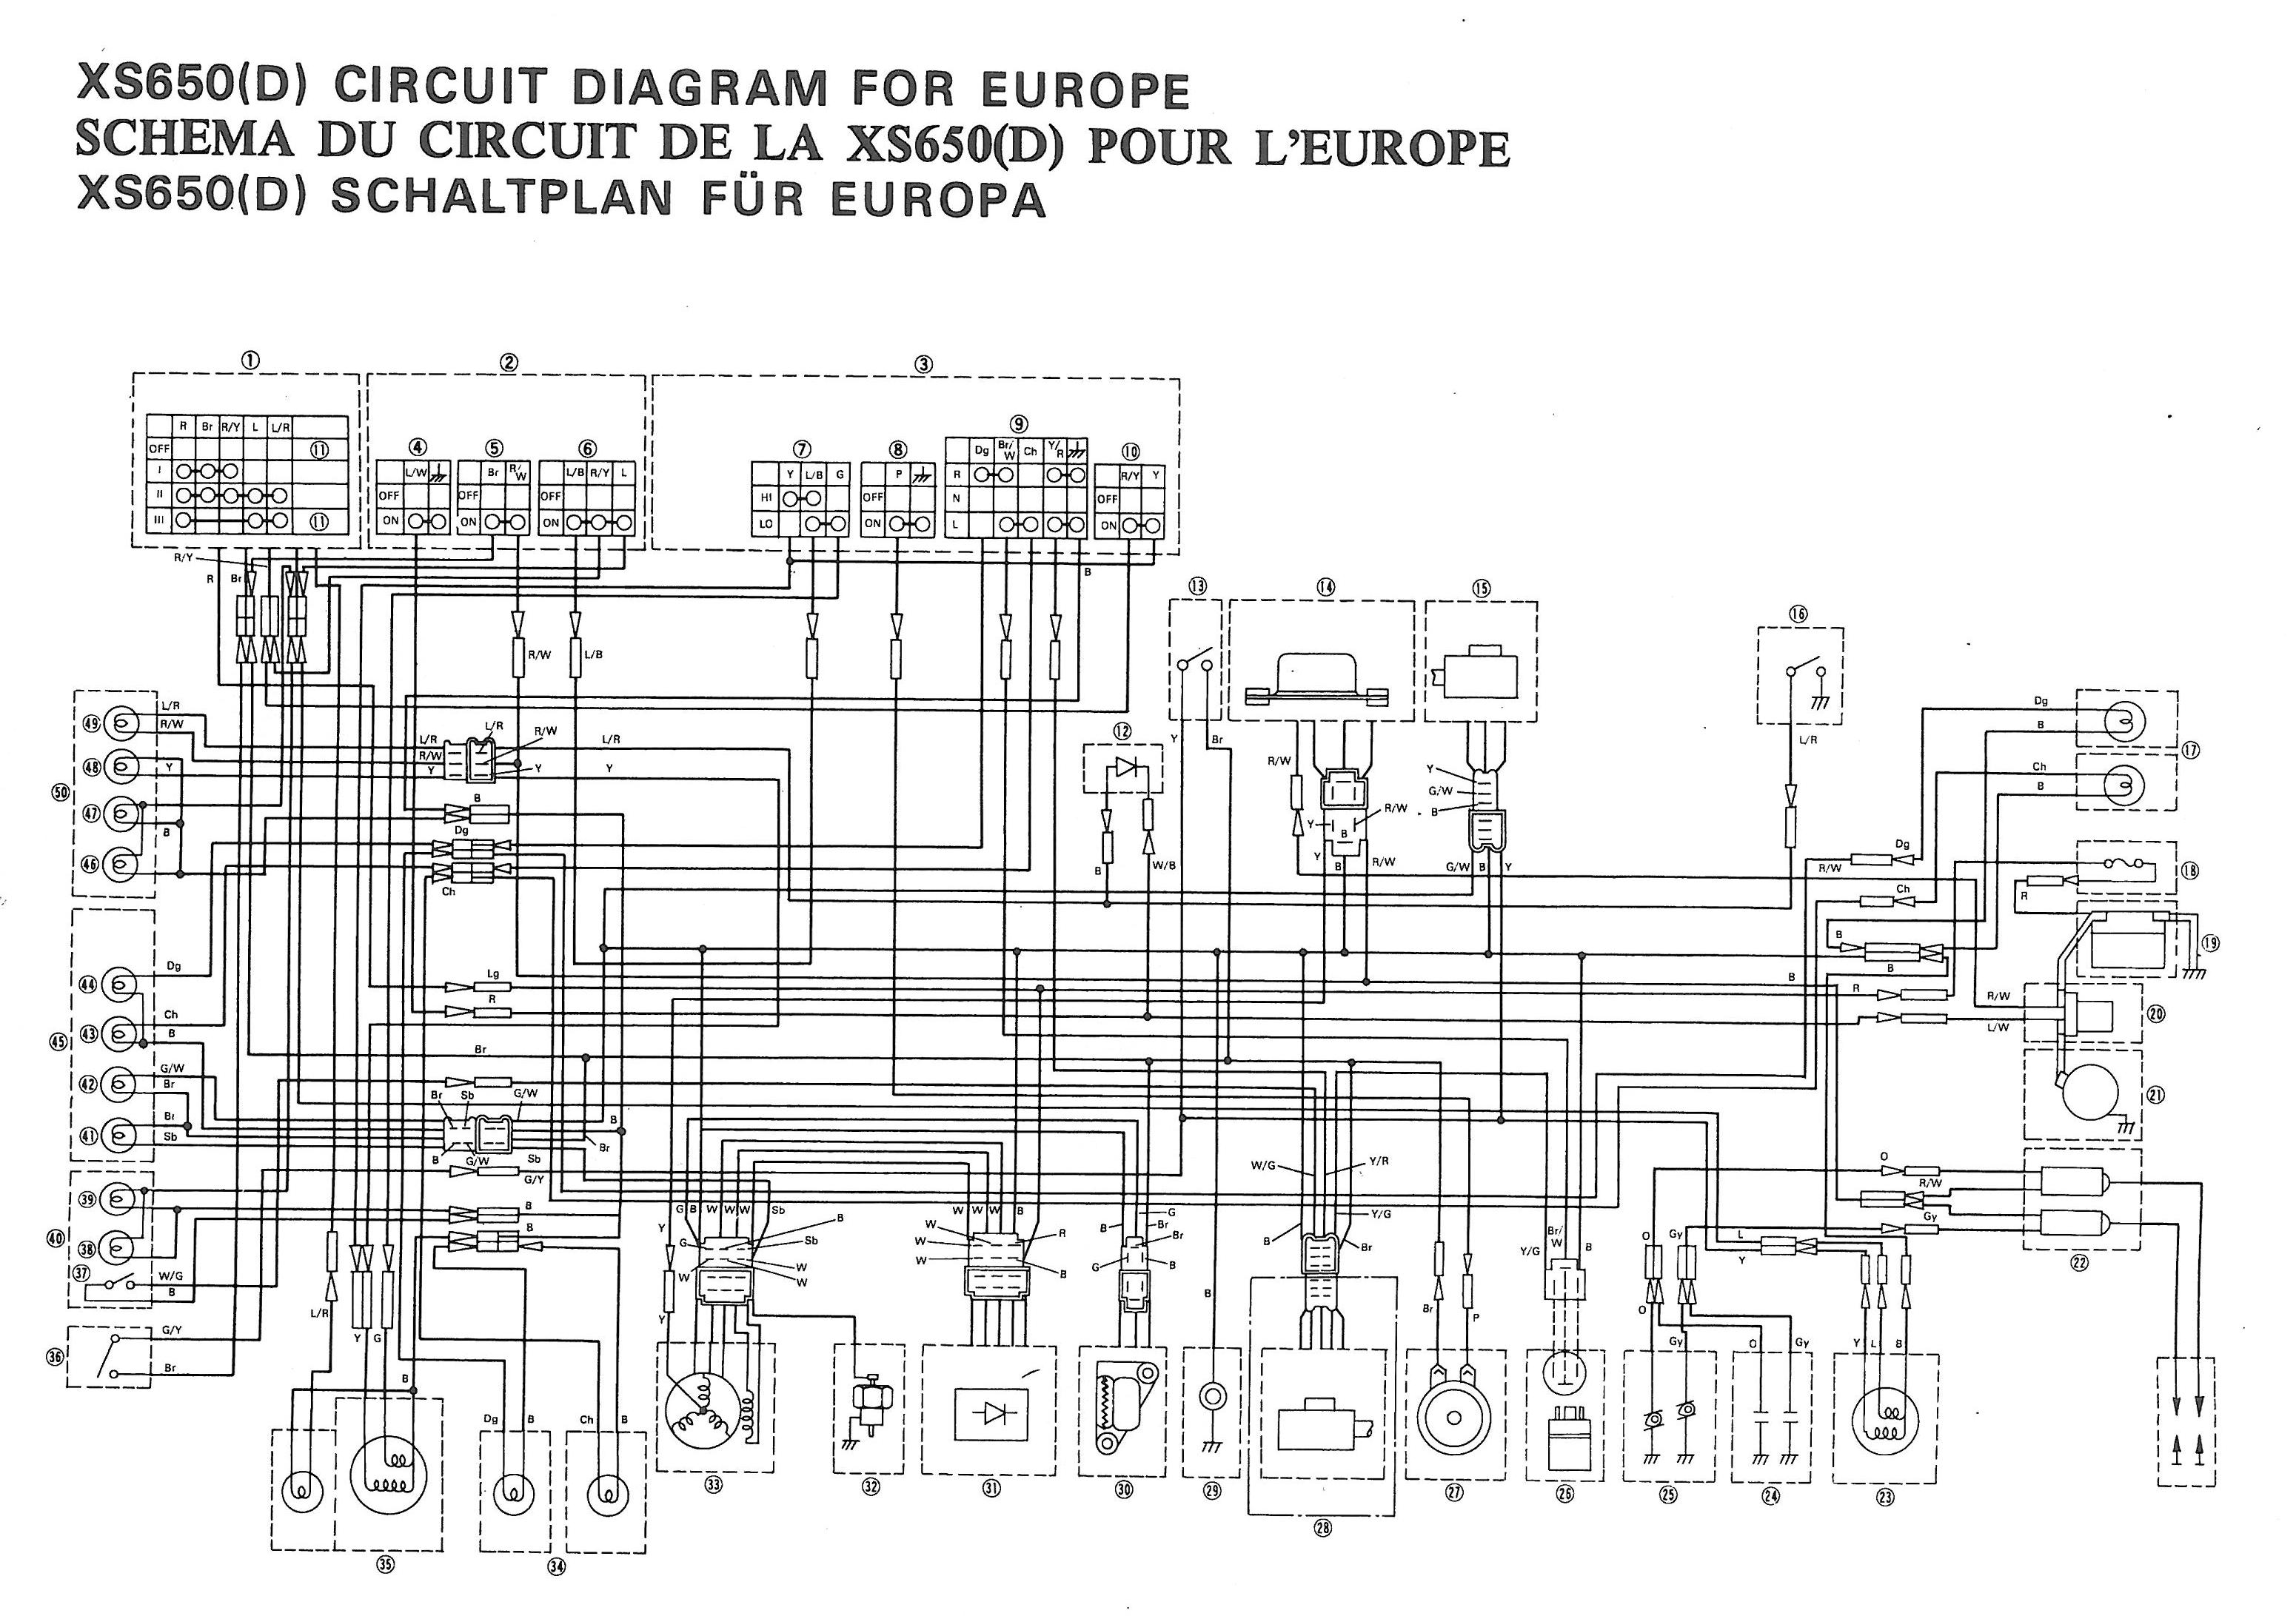 Xs650 Wiring Schematic Engine Diagram Pictures Kia Rio Electrical Free Picture 77 Xs D Thexscafe Rh Thexscafedotcom Wordpress Com 1964 Mustang Alternator Diagrams